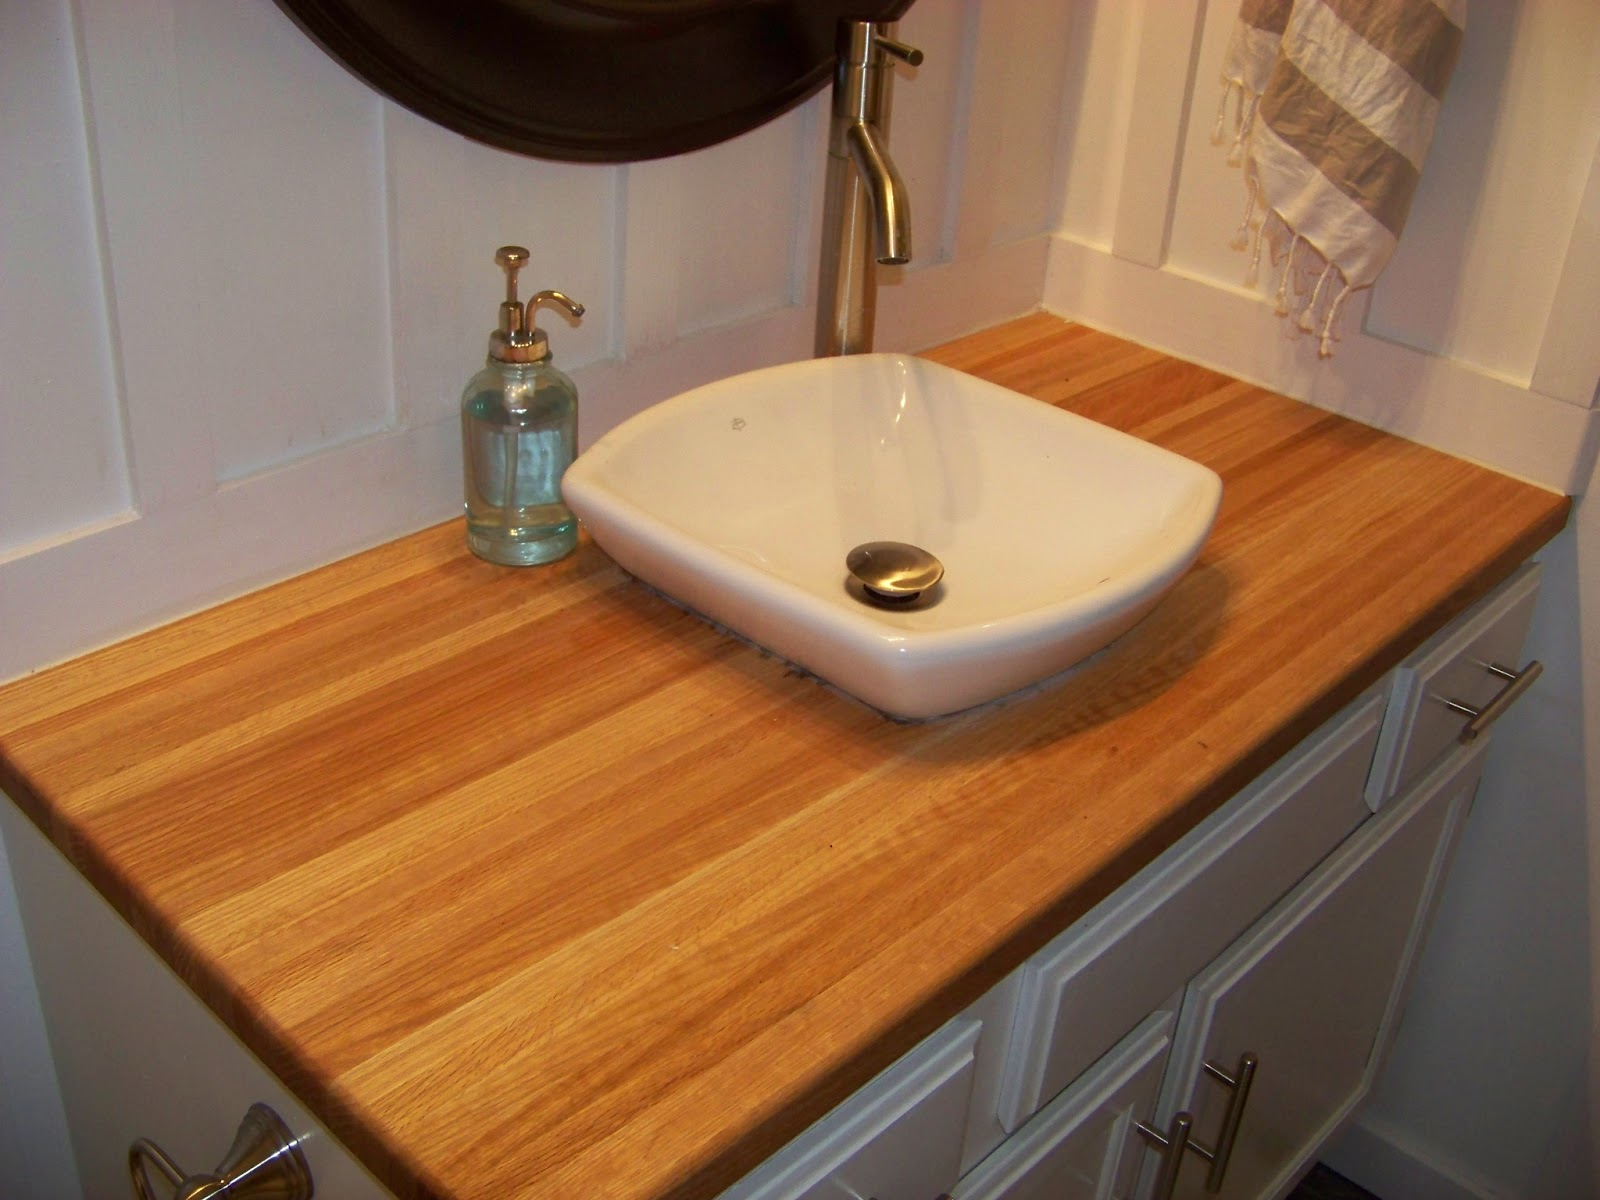 There it is my beautiful butcher block counter top